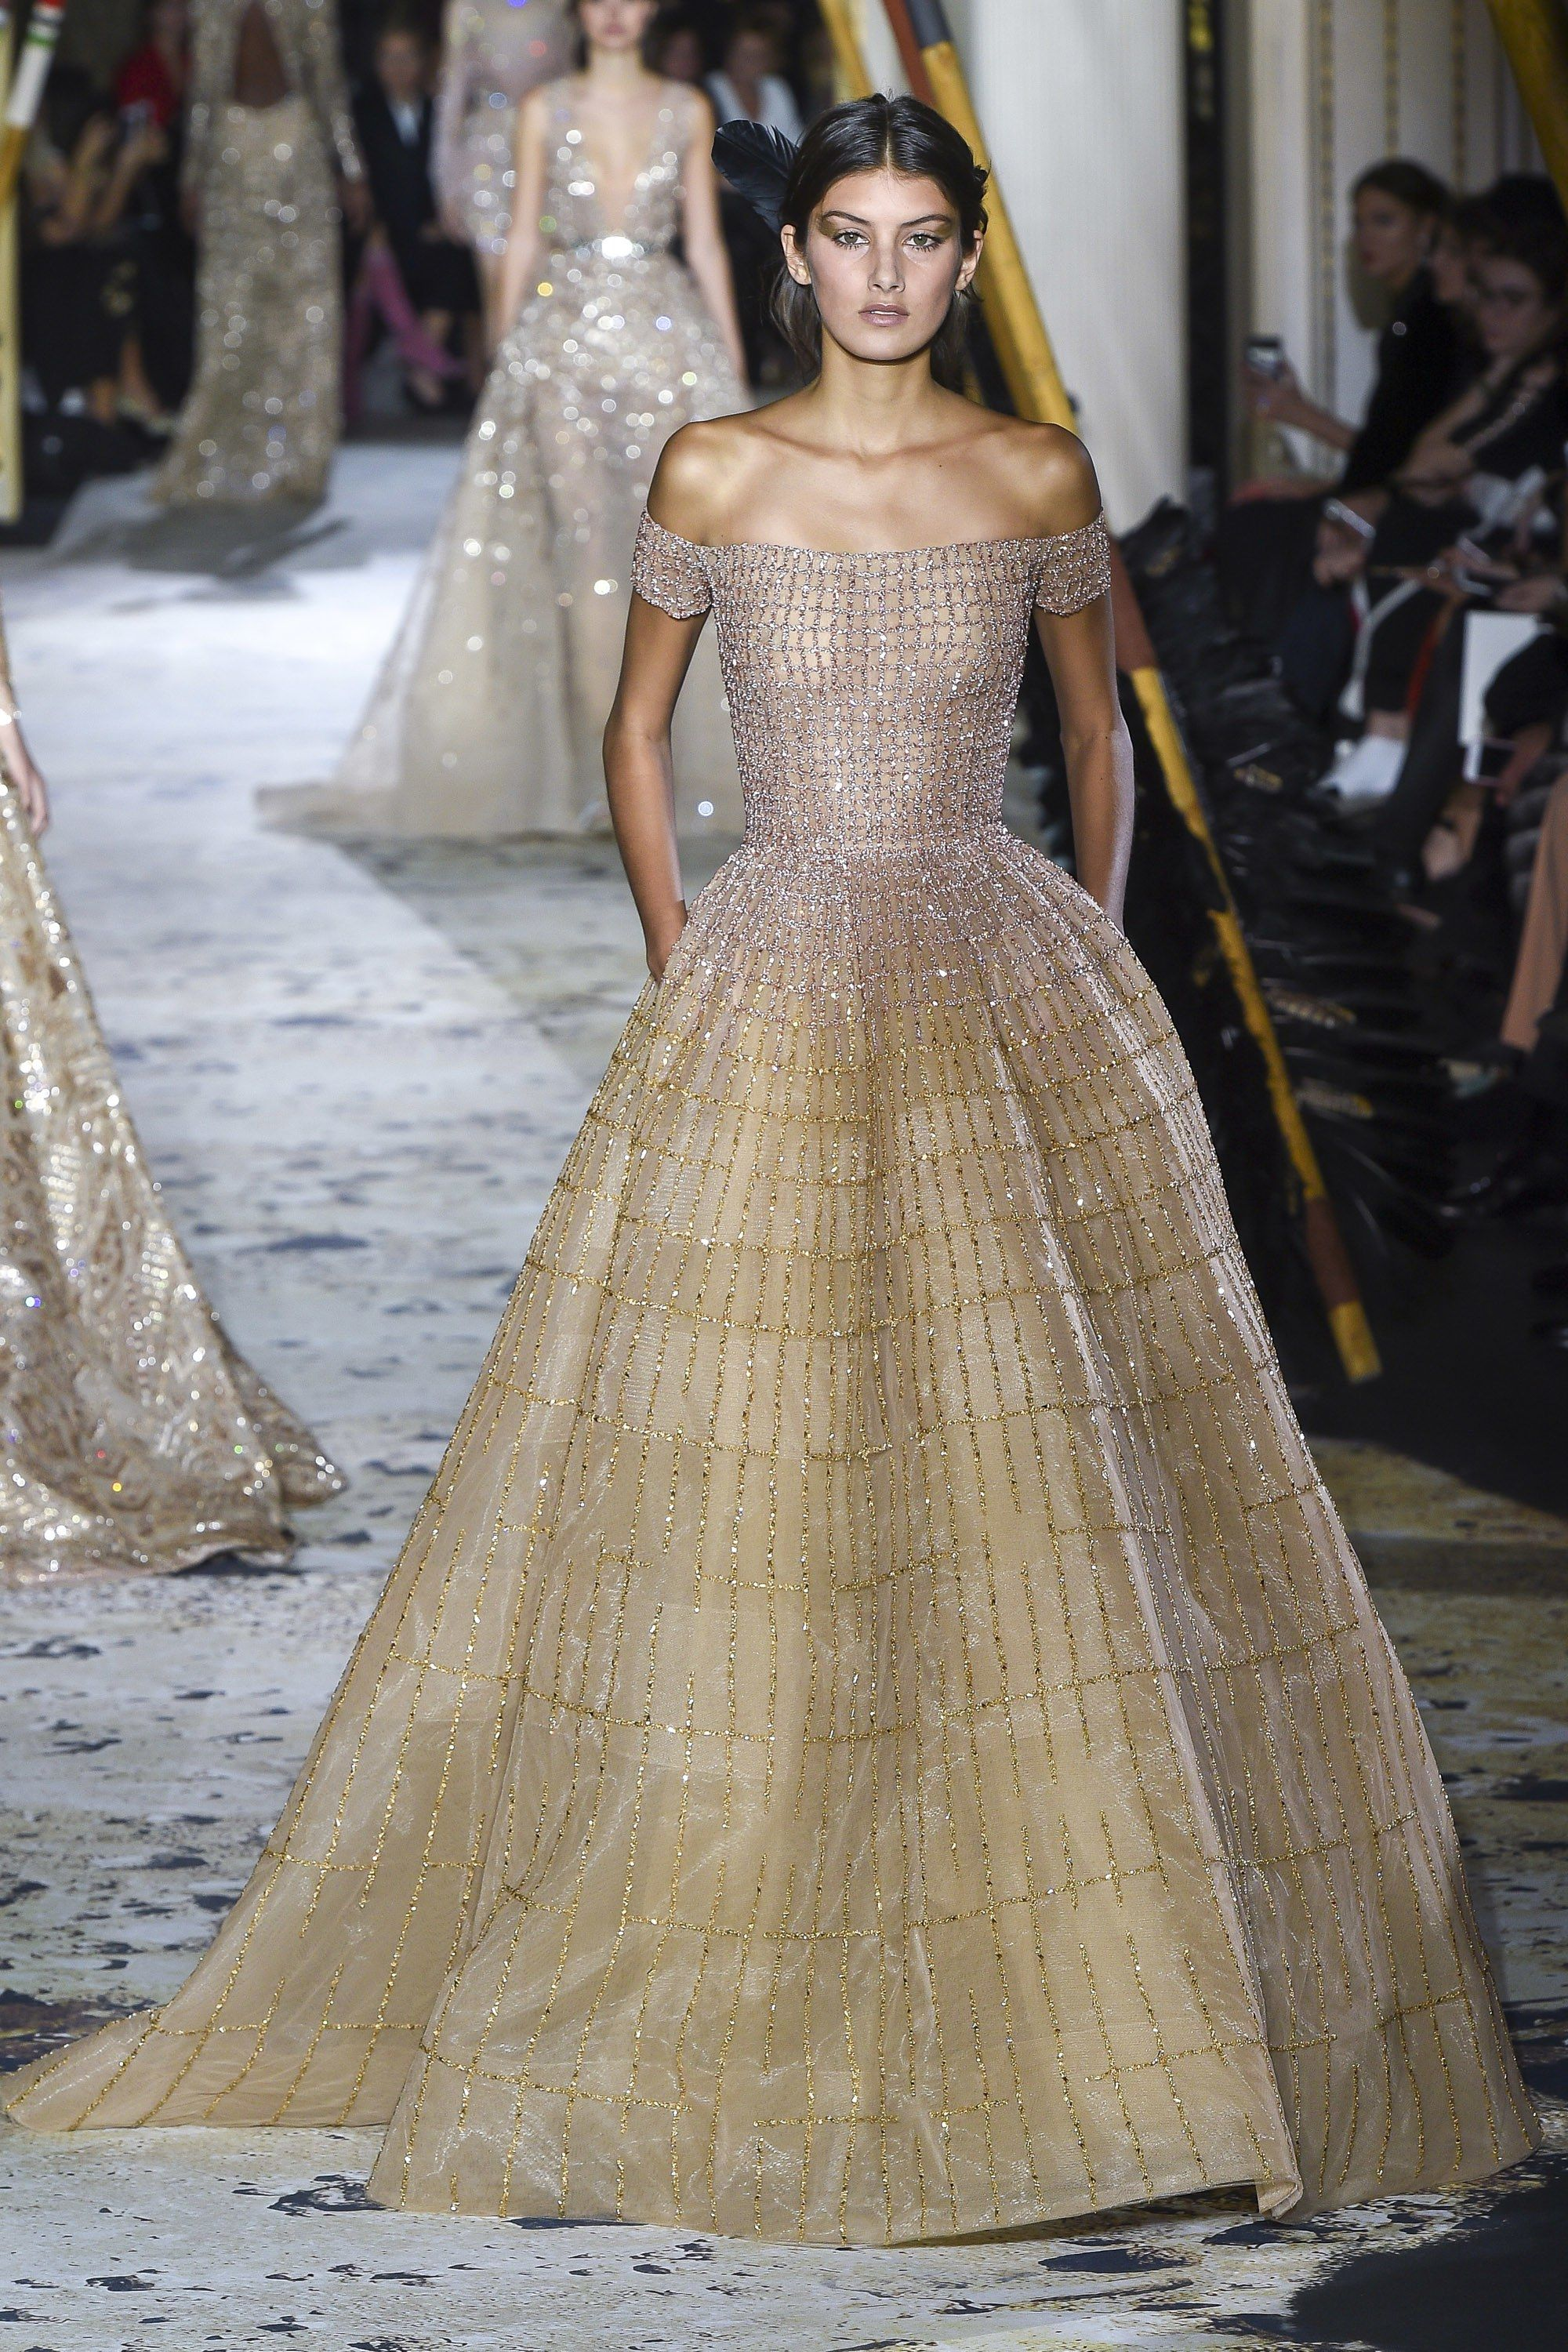 c3656dad3eb Zuhair Murad Couture Lente gepresenteerd in Parijs. https   www.vogue .com fashion-shows spring-